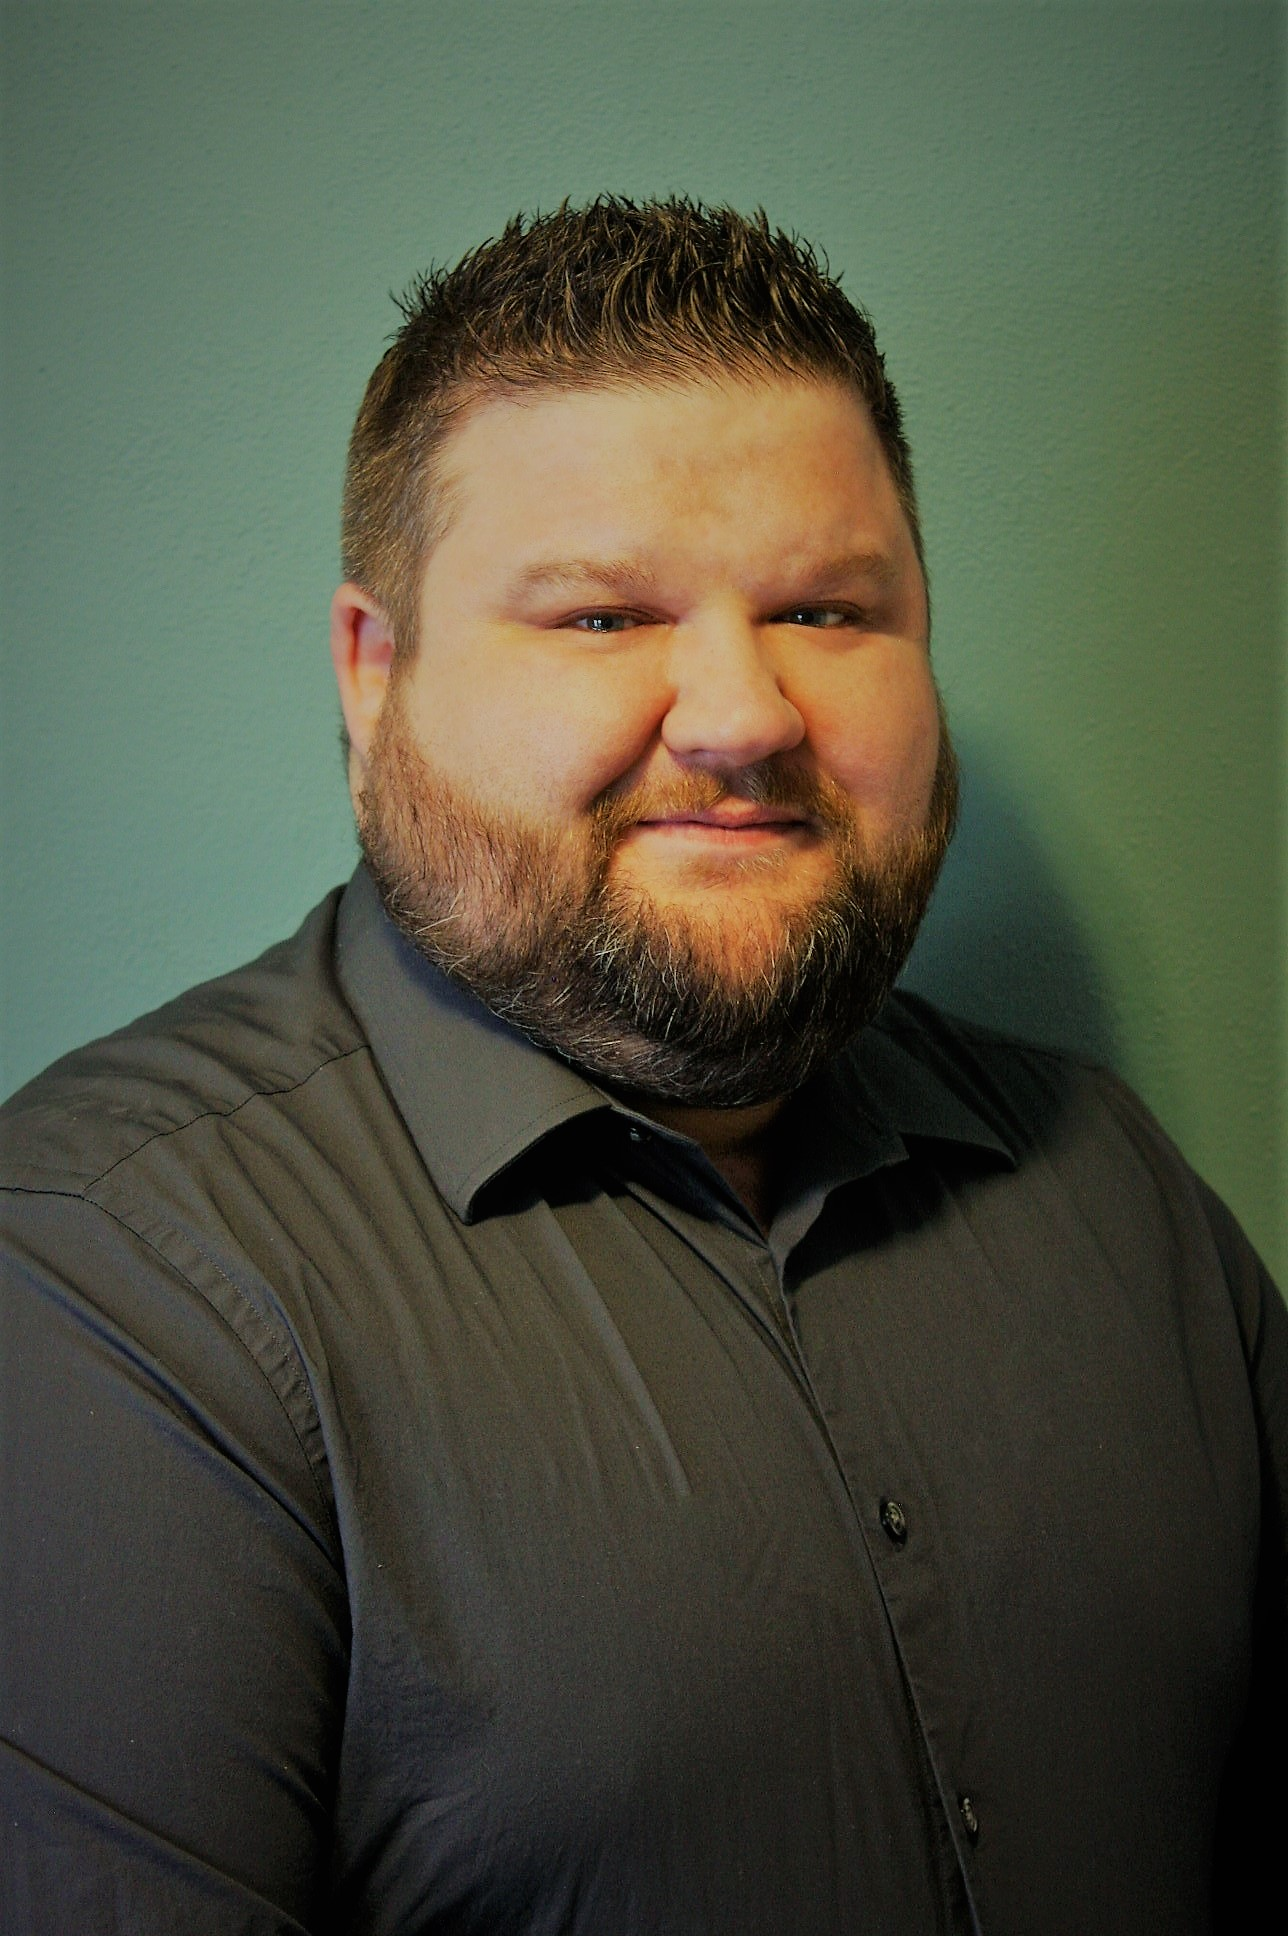 Please Join EXIT Realty in wishing Zack Moydell a Happy Birthday!